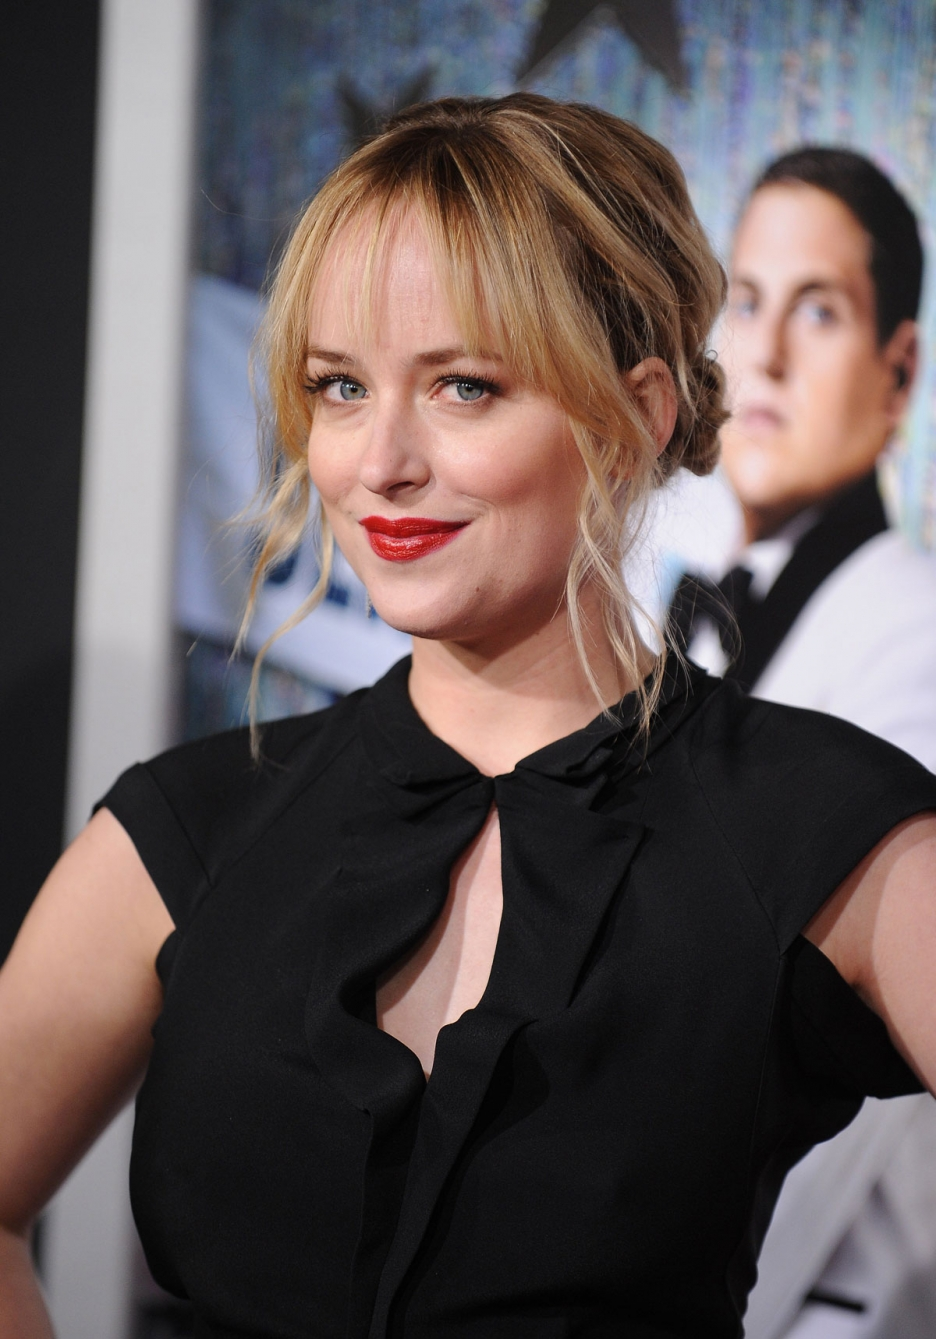 Dakota Johnson Cast as Anastasia Steele in FIFTY SHADES OF GREY